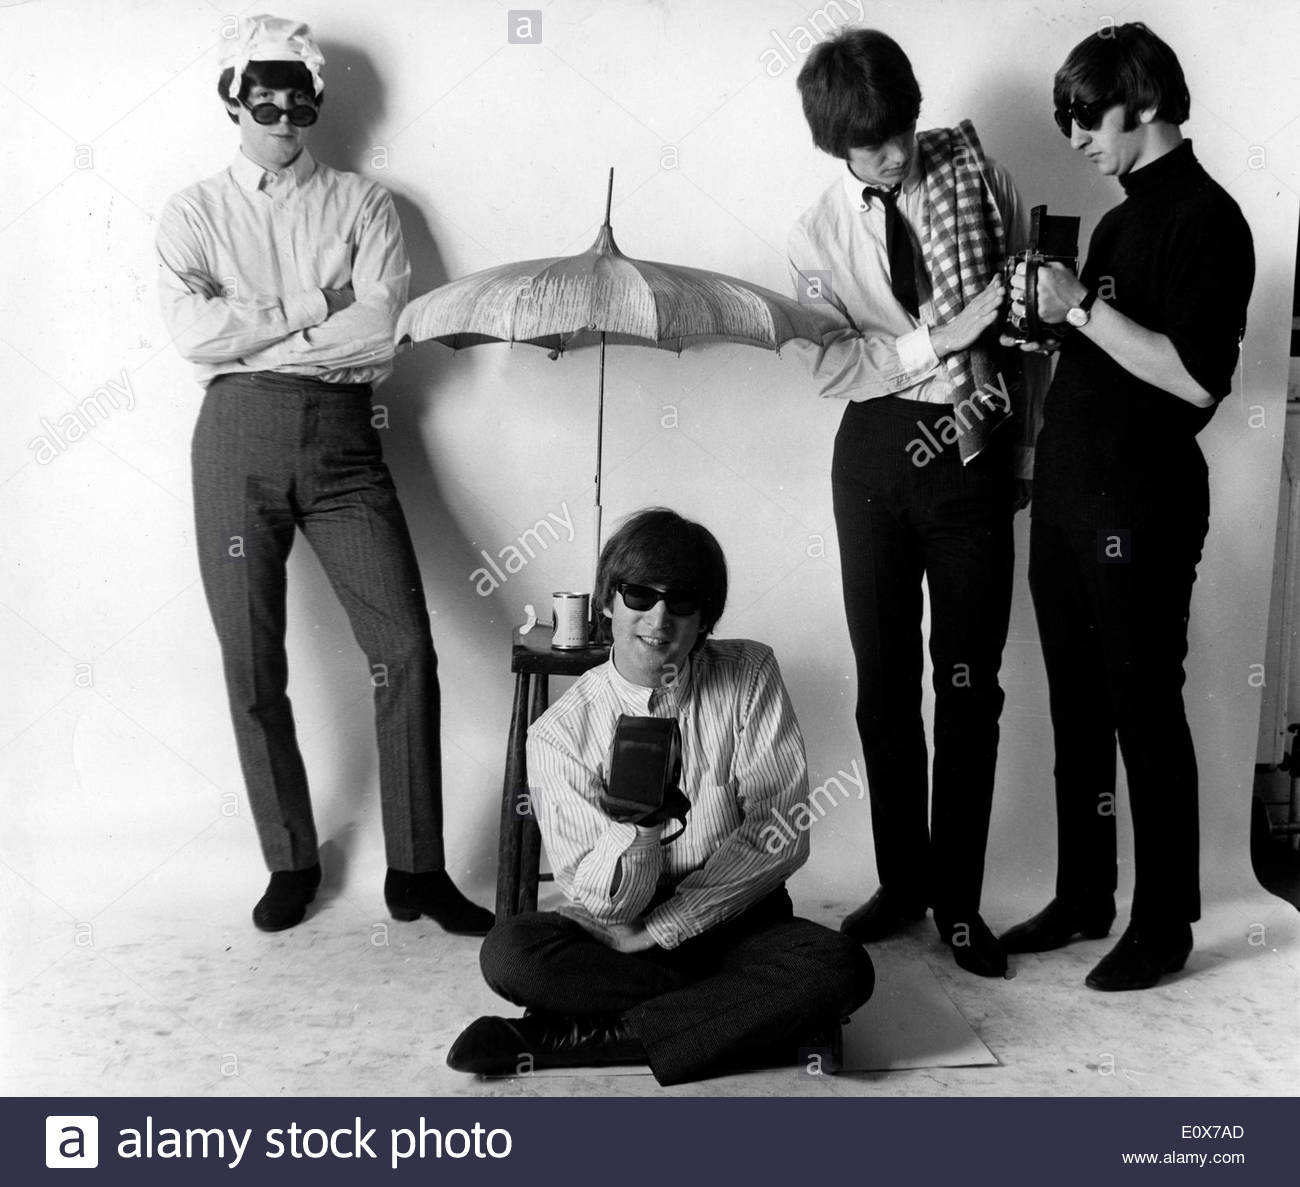 The Beatles during a summer themed photo shoot - Stock Image